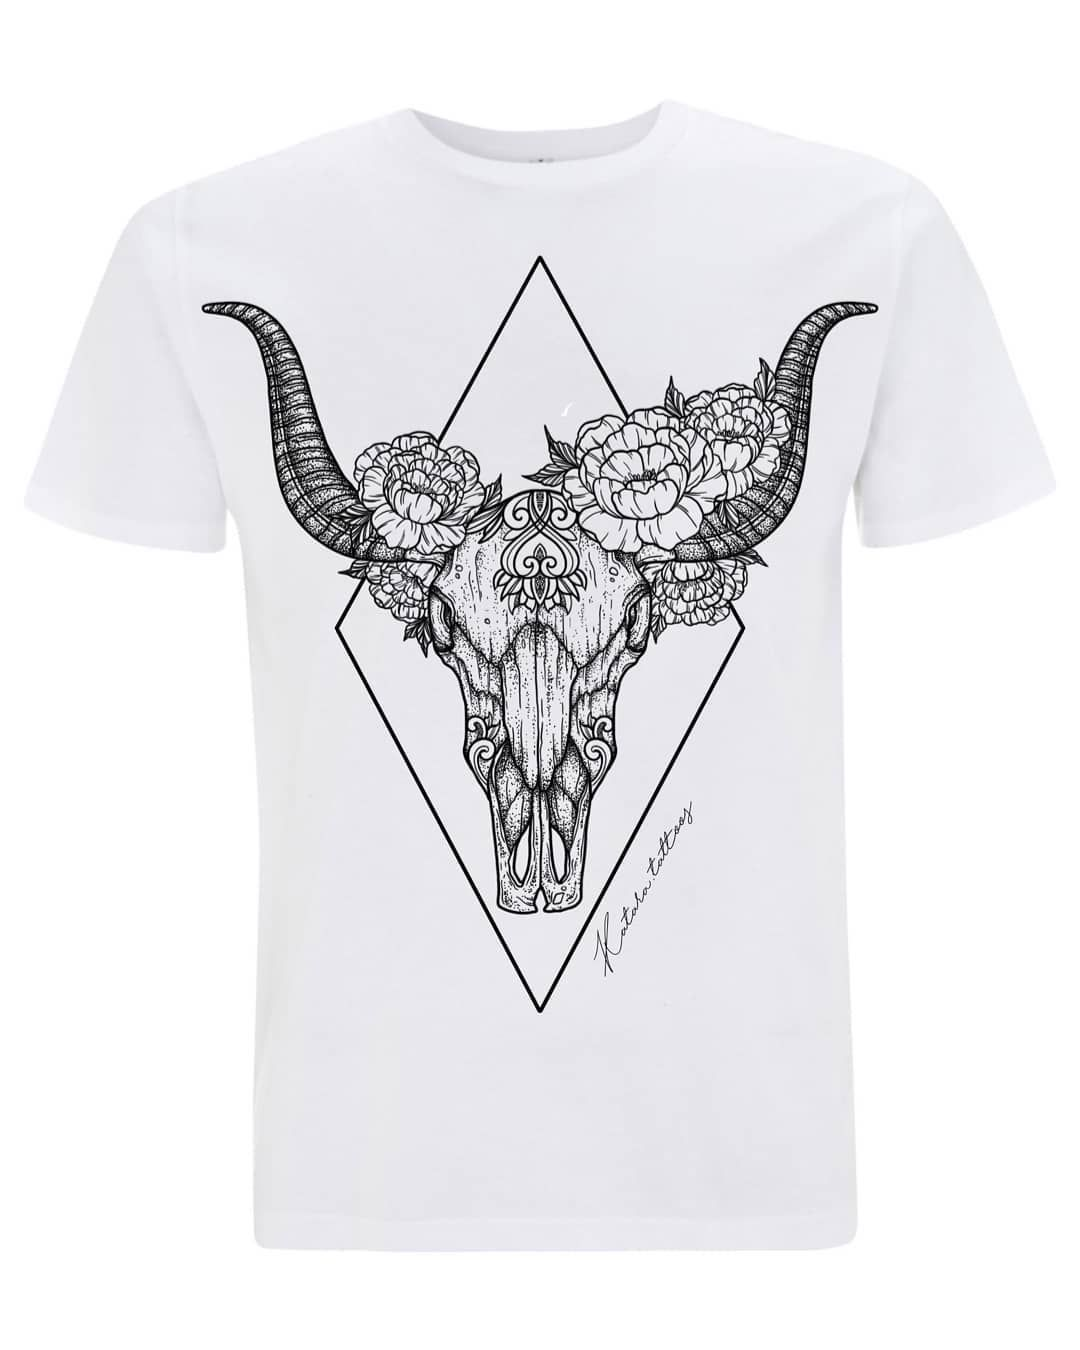 The designs for the shirts are ready! Which one do you like more? Will first do only one design. Let me know😁🙏 . . . @isolation_art_project #shirt #merch #tattoomerch #skull #shirtdesign #design #tattooart #art #siebdruck #print #printart #swisstattooer #swissisolationartproject #dotwork #ornamental #btattooing #zurichartists #artist #kataratattoos